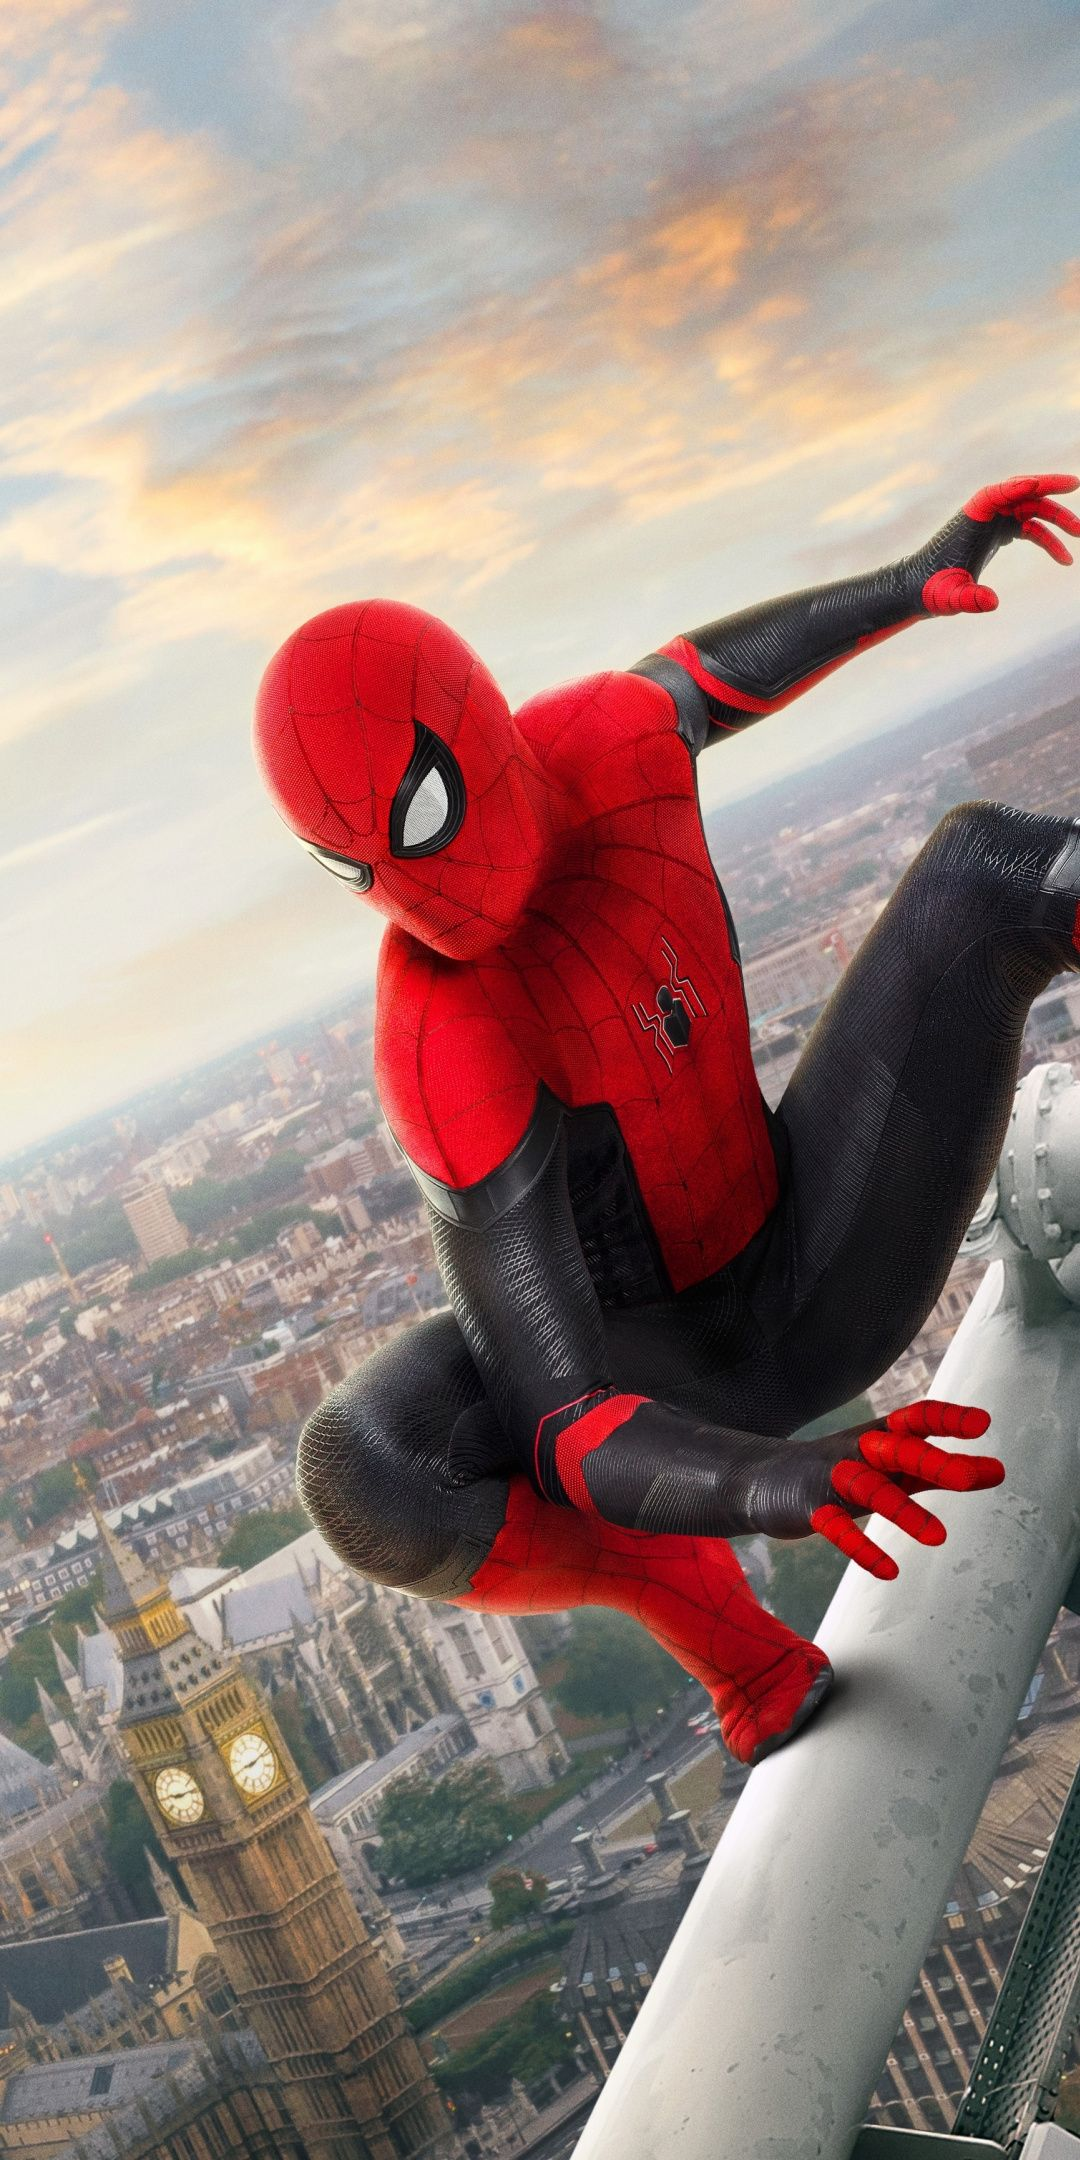 Spider Man Movie 2019 Far From Home Wallpaper Marvel Spiderman Art Spiderman Artwork Amazing Spiderman